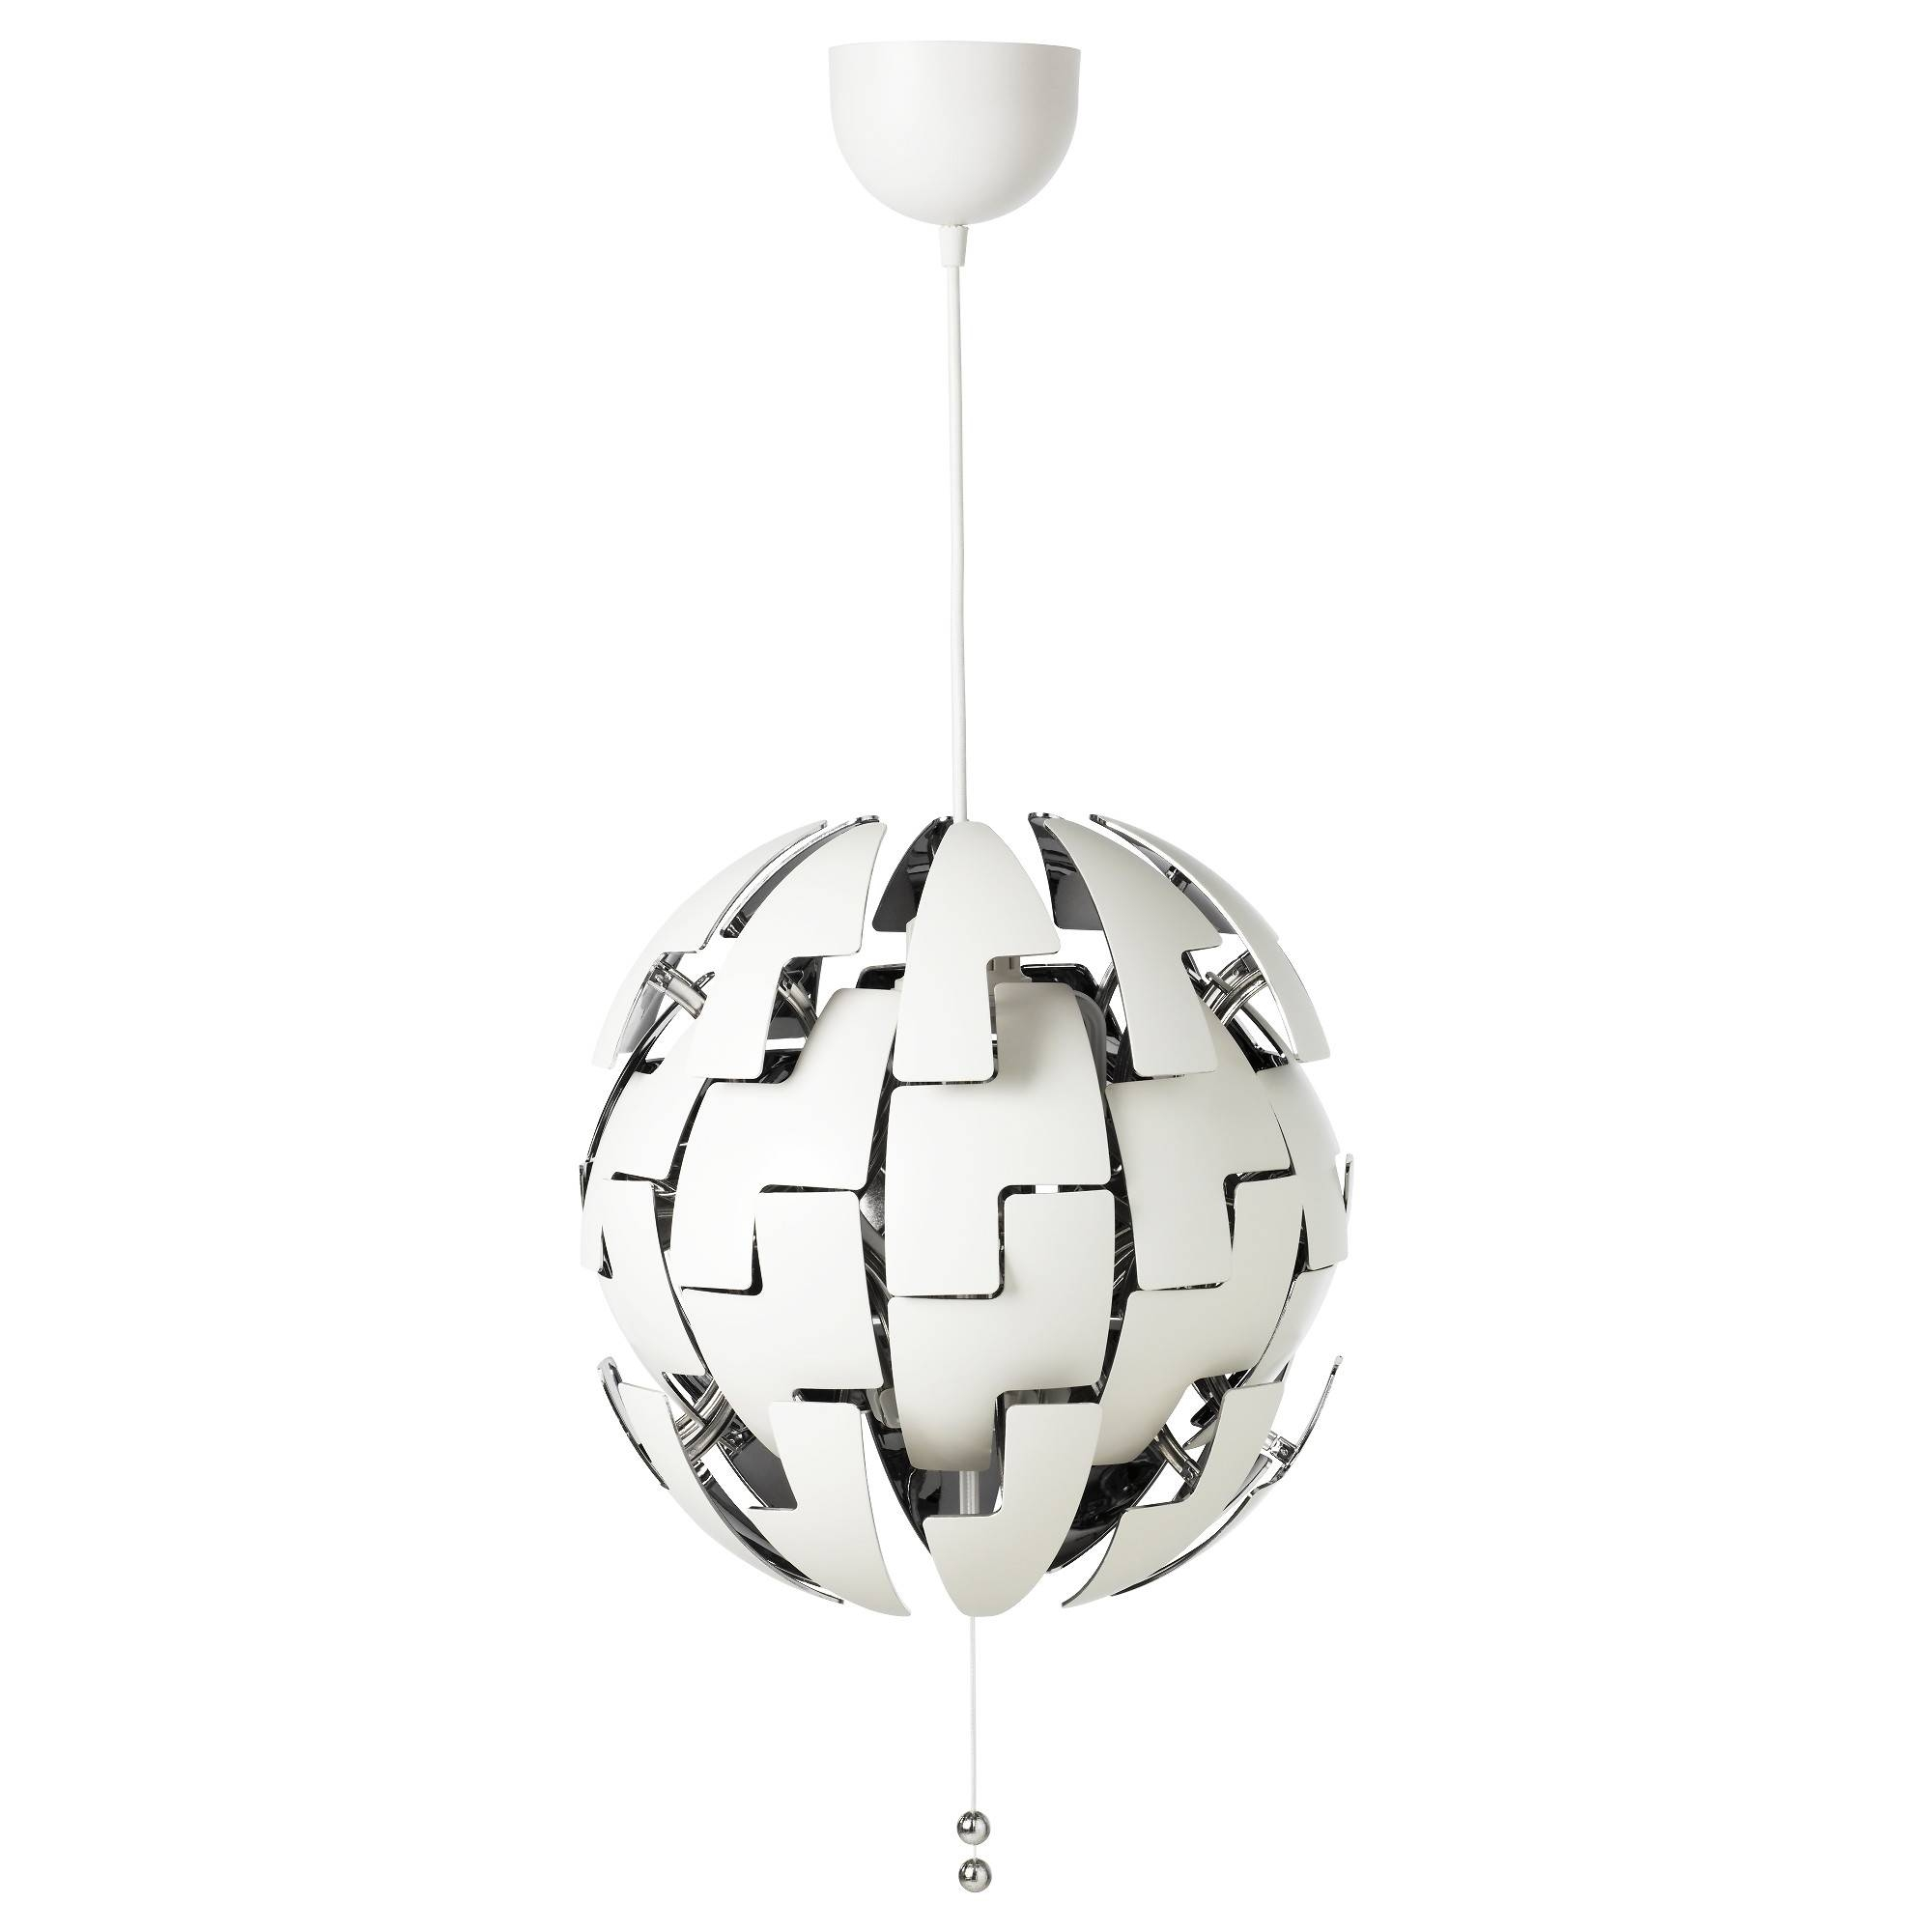 Ikea Ps 2014 Pendant Lamp - White/silver Color - Ikea in Ikea Ceiling Lights Fittings (Image 7 of 15)